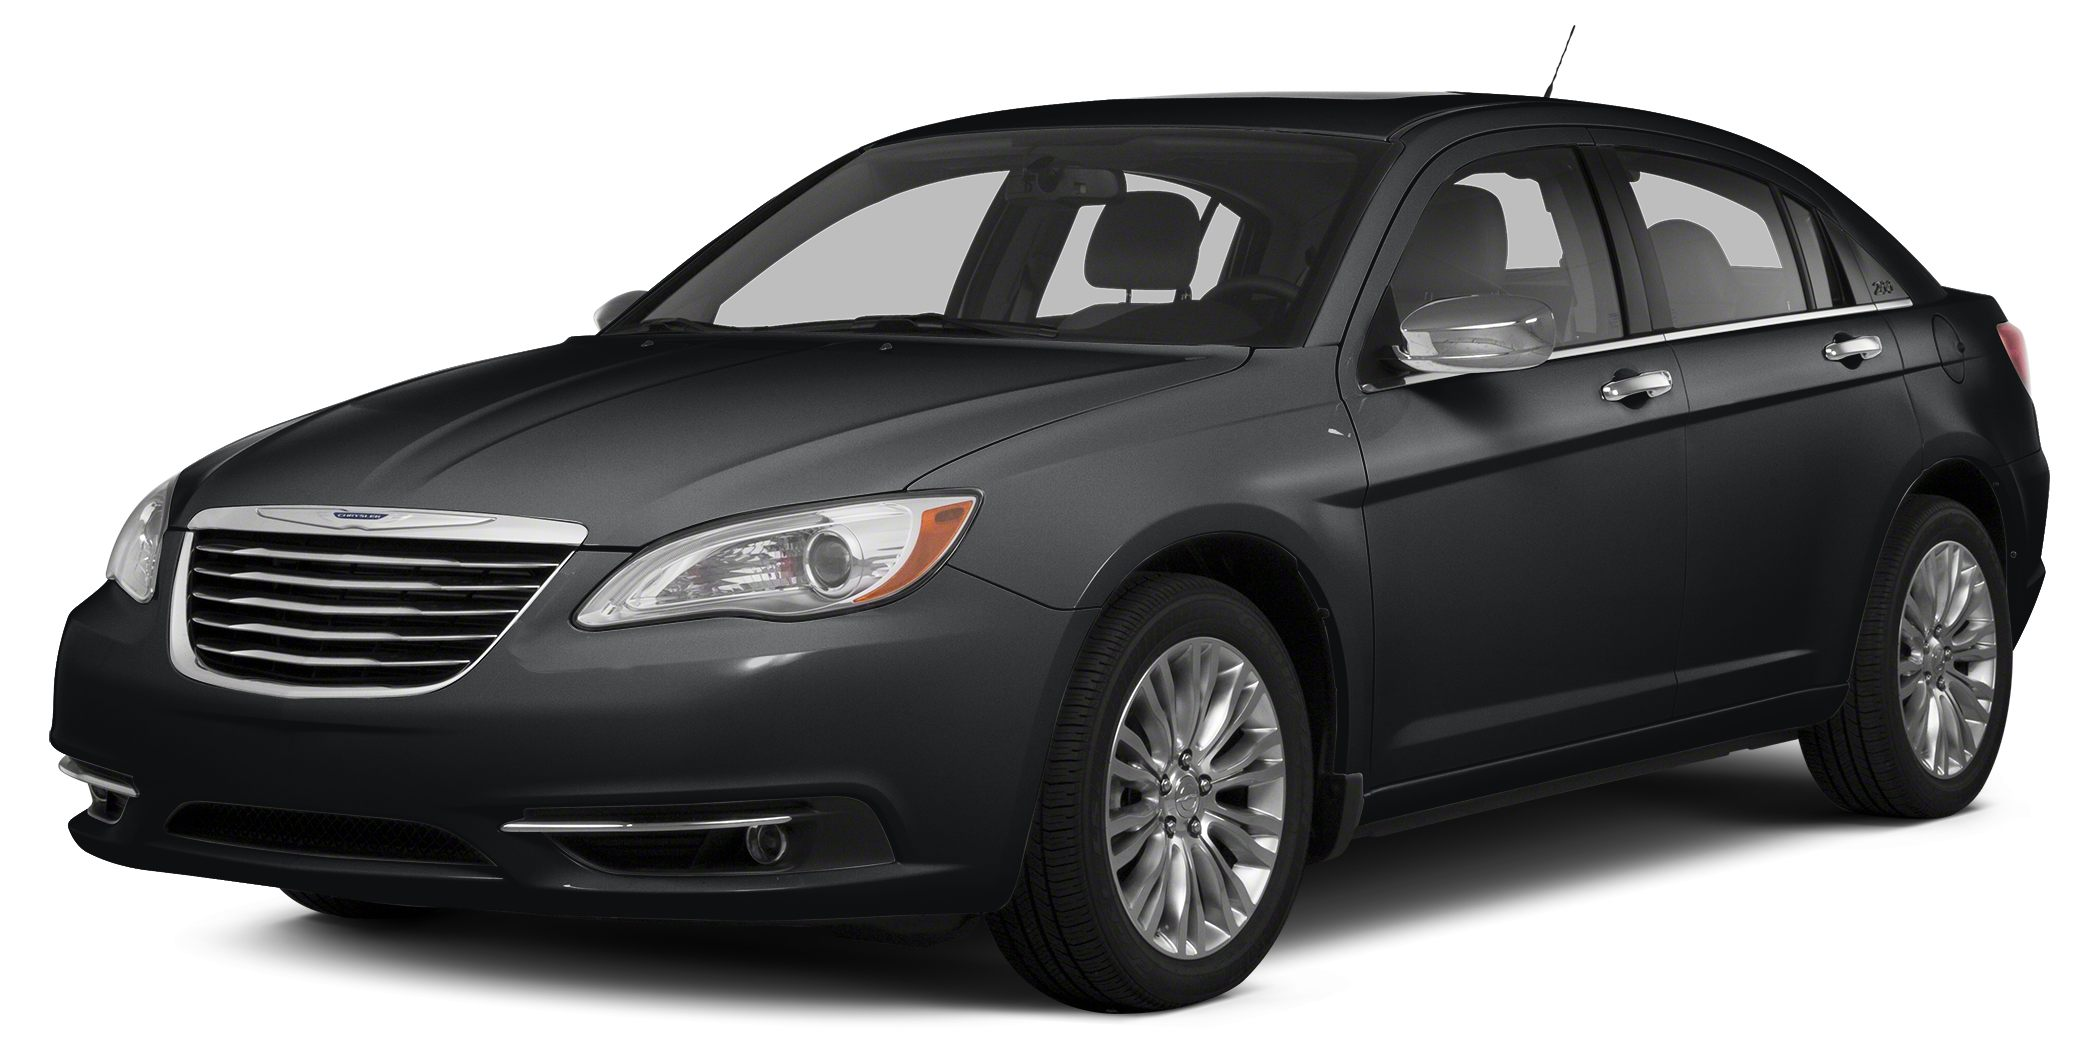 2014 Chrysler 200 Touring Vehicle Detailed Recent Oil Change and Passed Dealer Inspection Yes